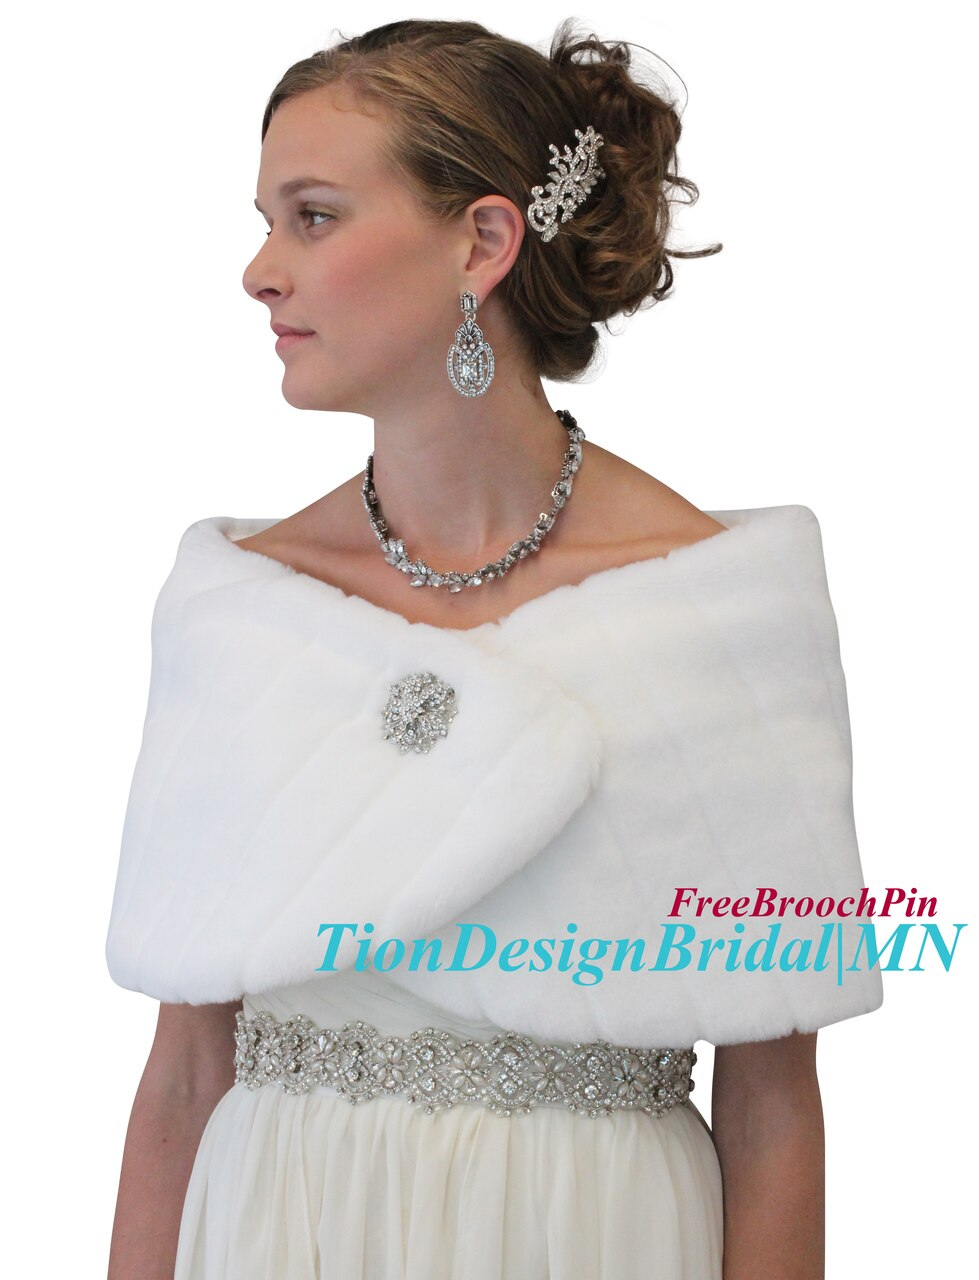 Bridal fur shawl wrap, White Wedding Faux Fur Wrap, Fur Shrug